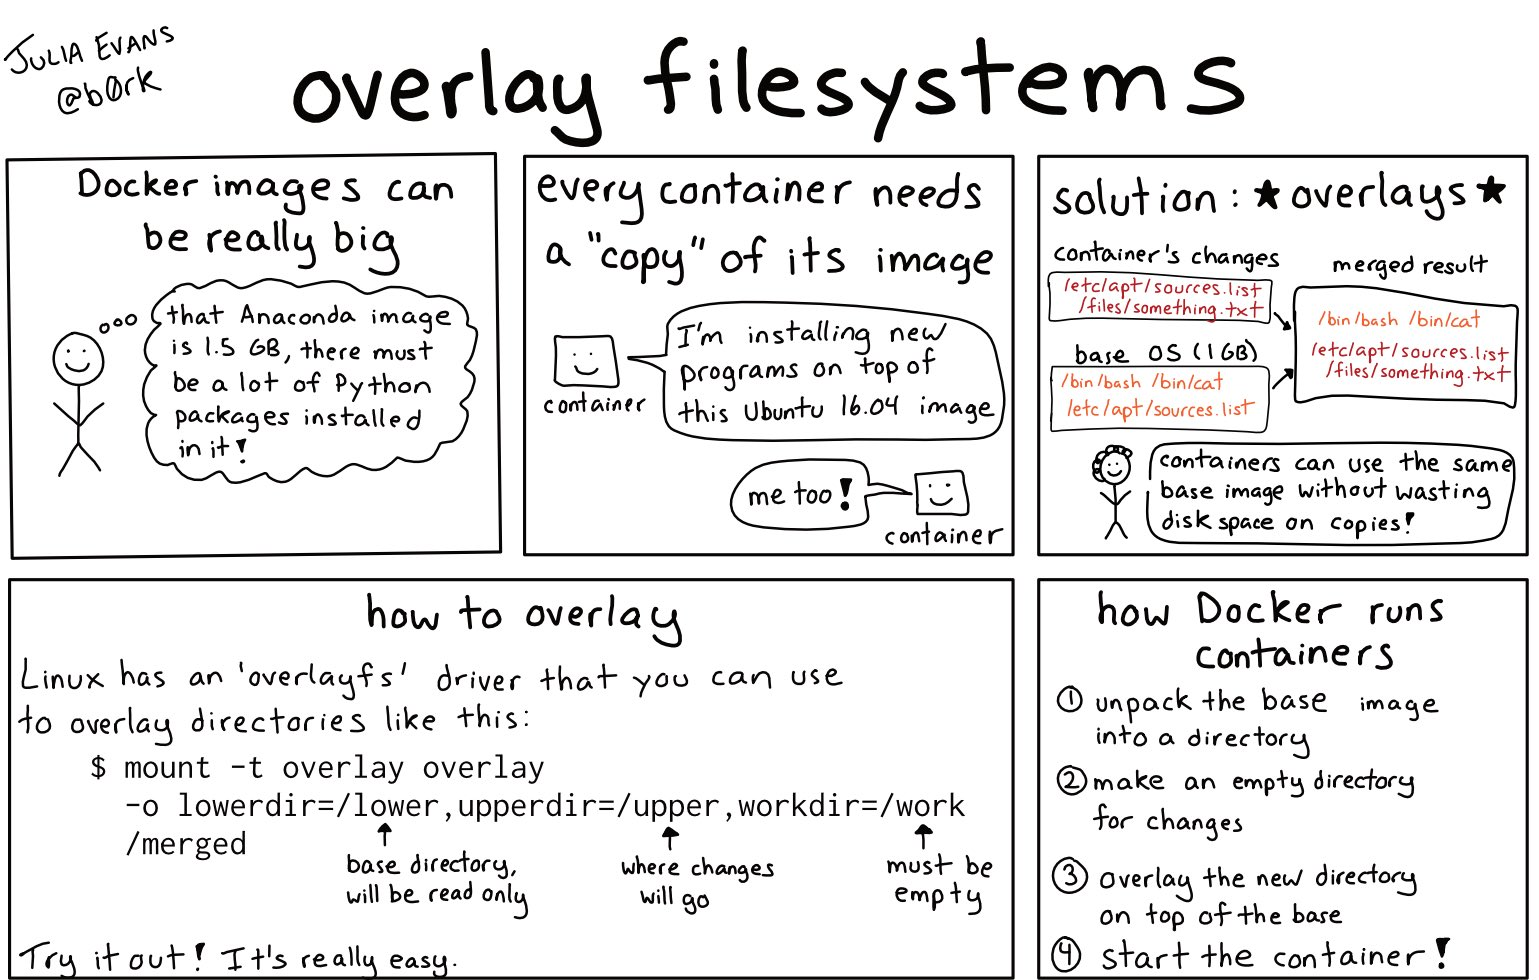 How containers work: overlayfs